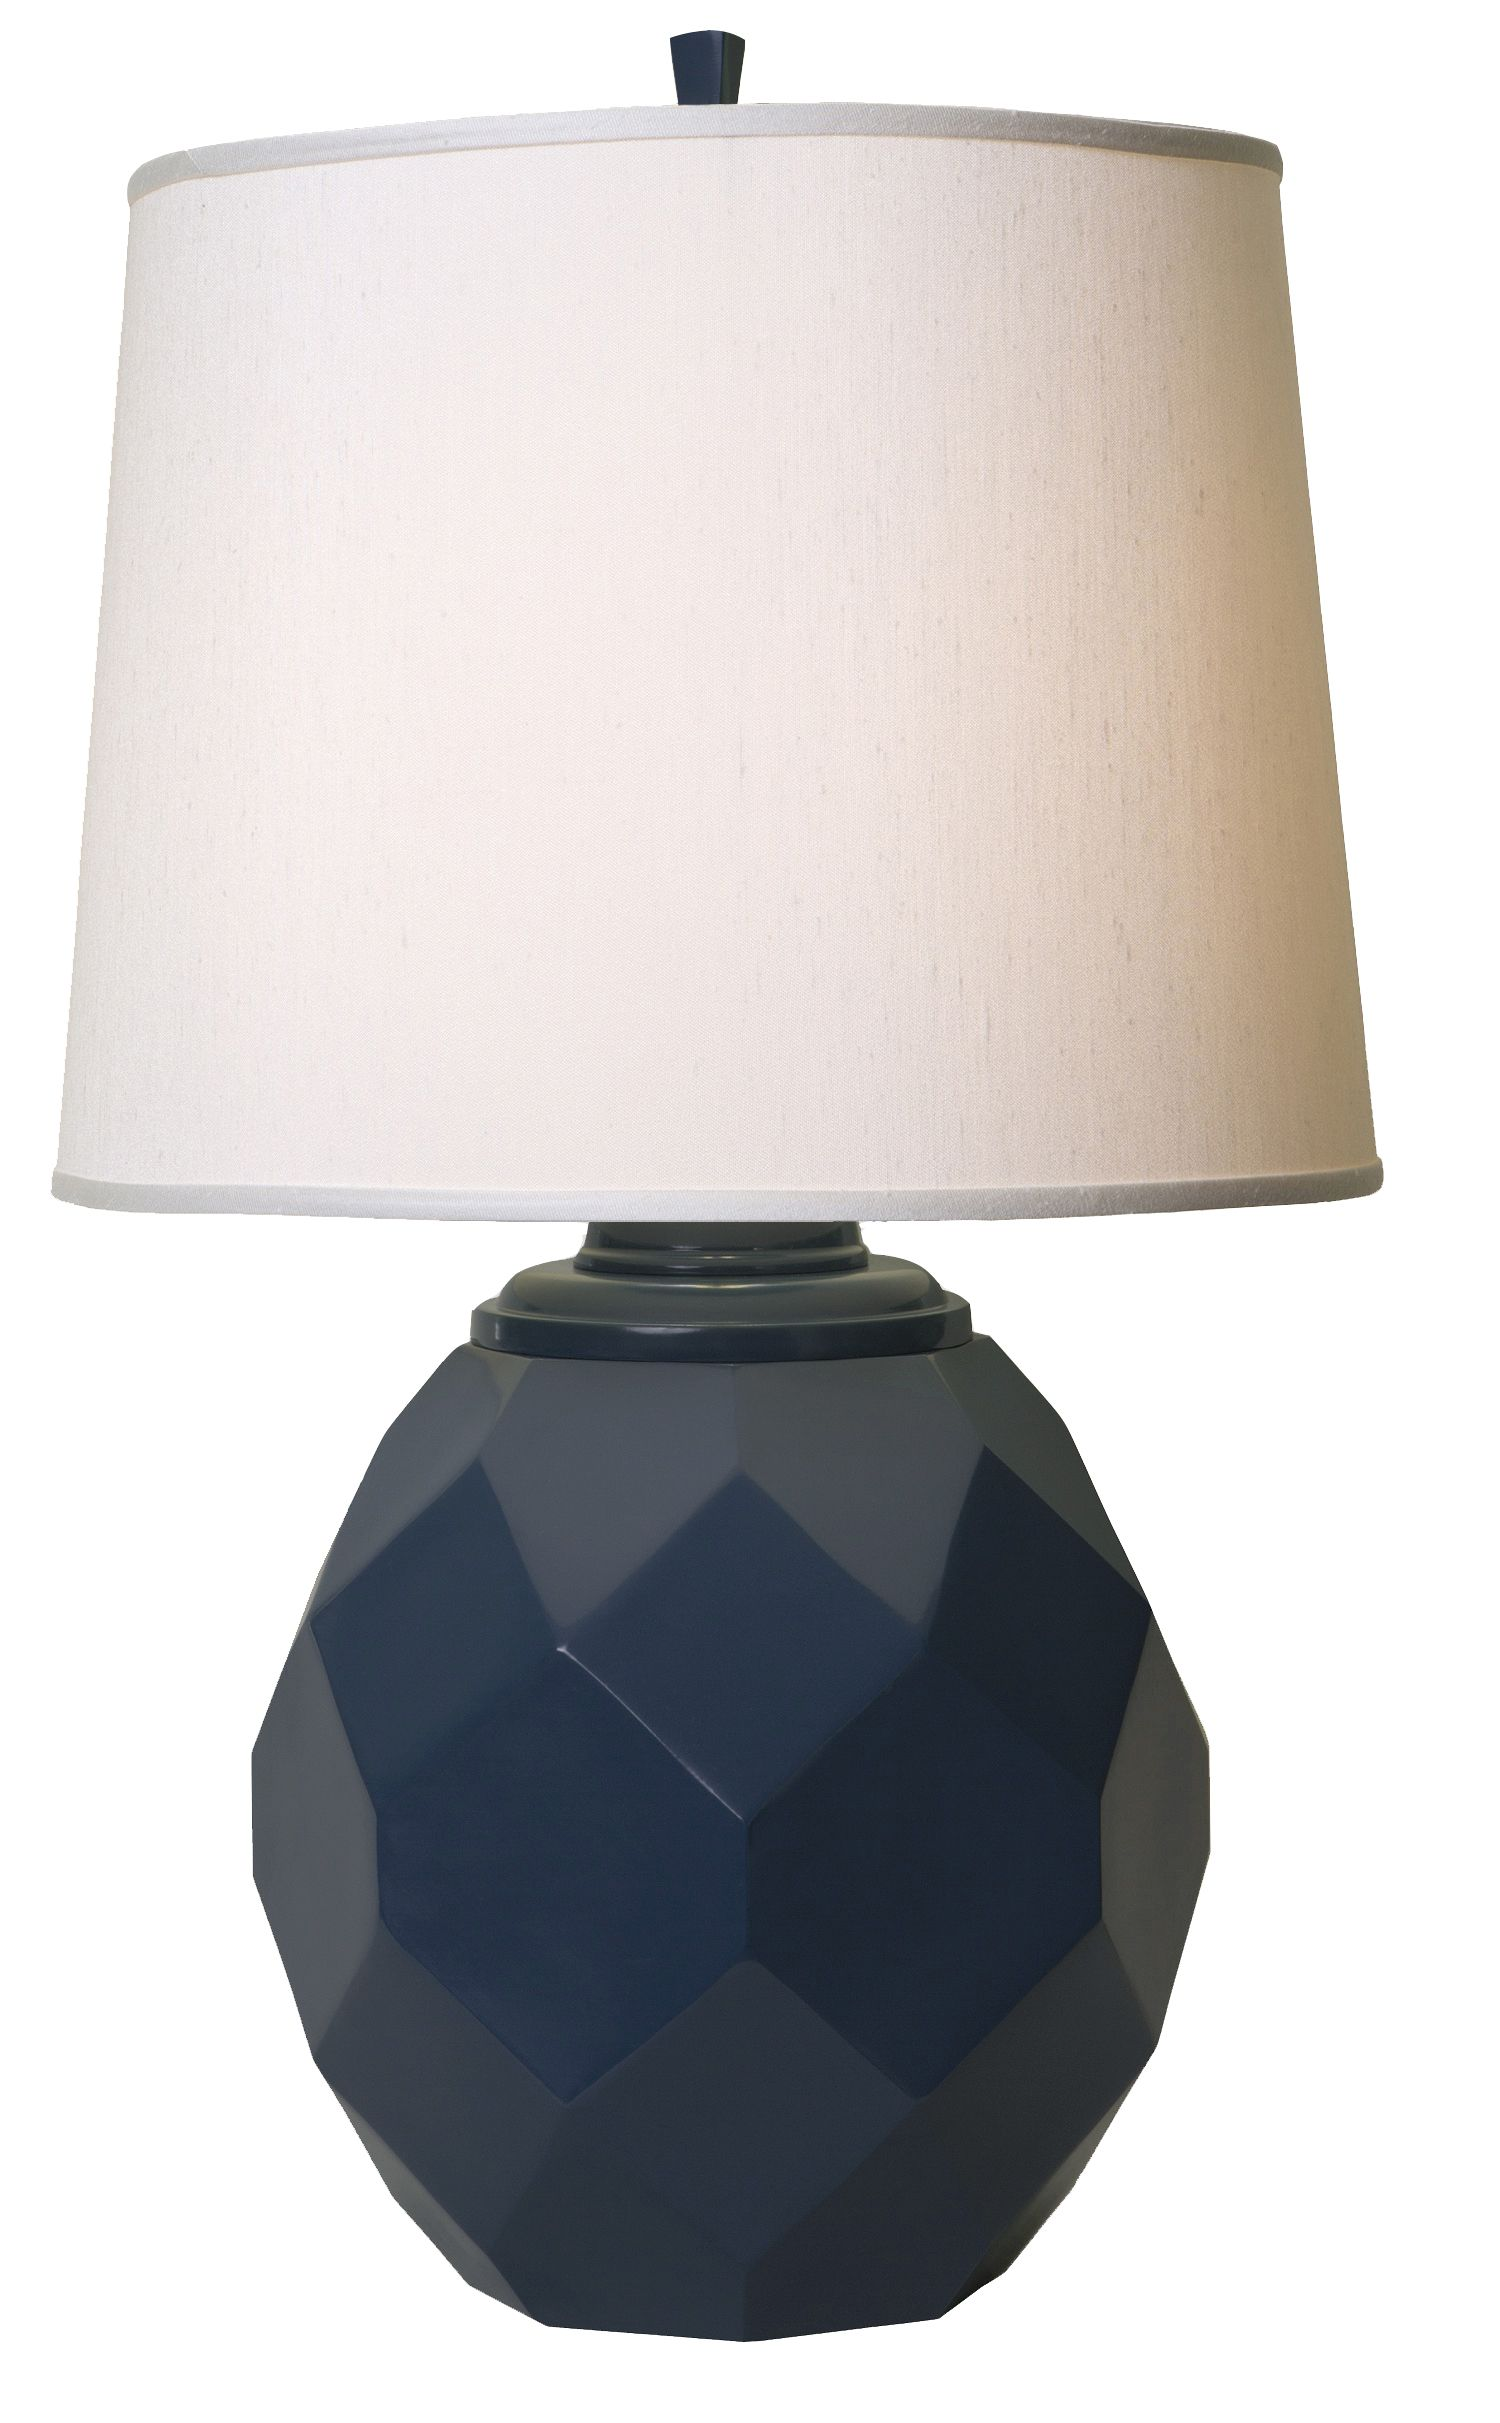 Thumprints Jewel Blue 1196 U13 Tl06 Cast Metal Table Lamp Silk Drum Hardback Shade Also Available In Chartruse Yellow Jeweled Lamp Lamp Table Lamp